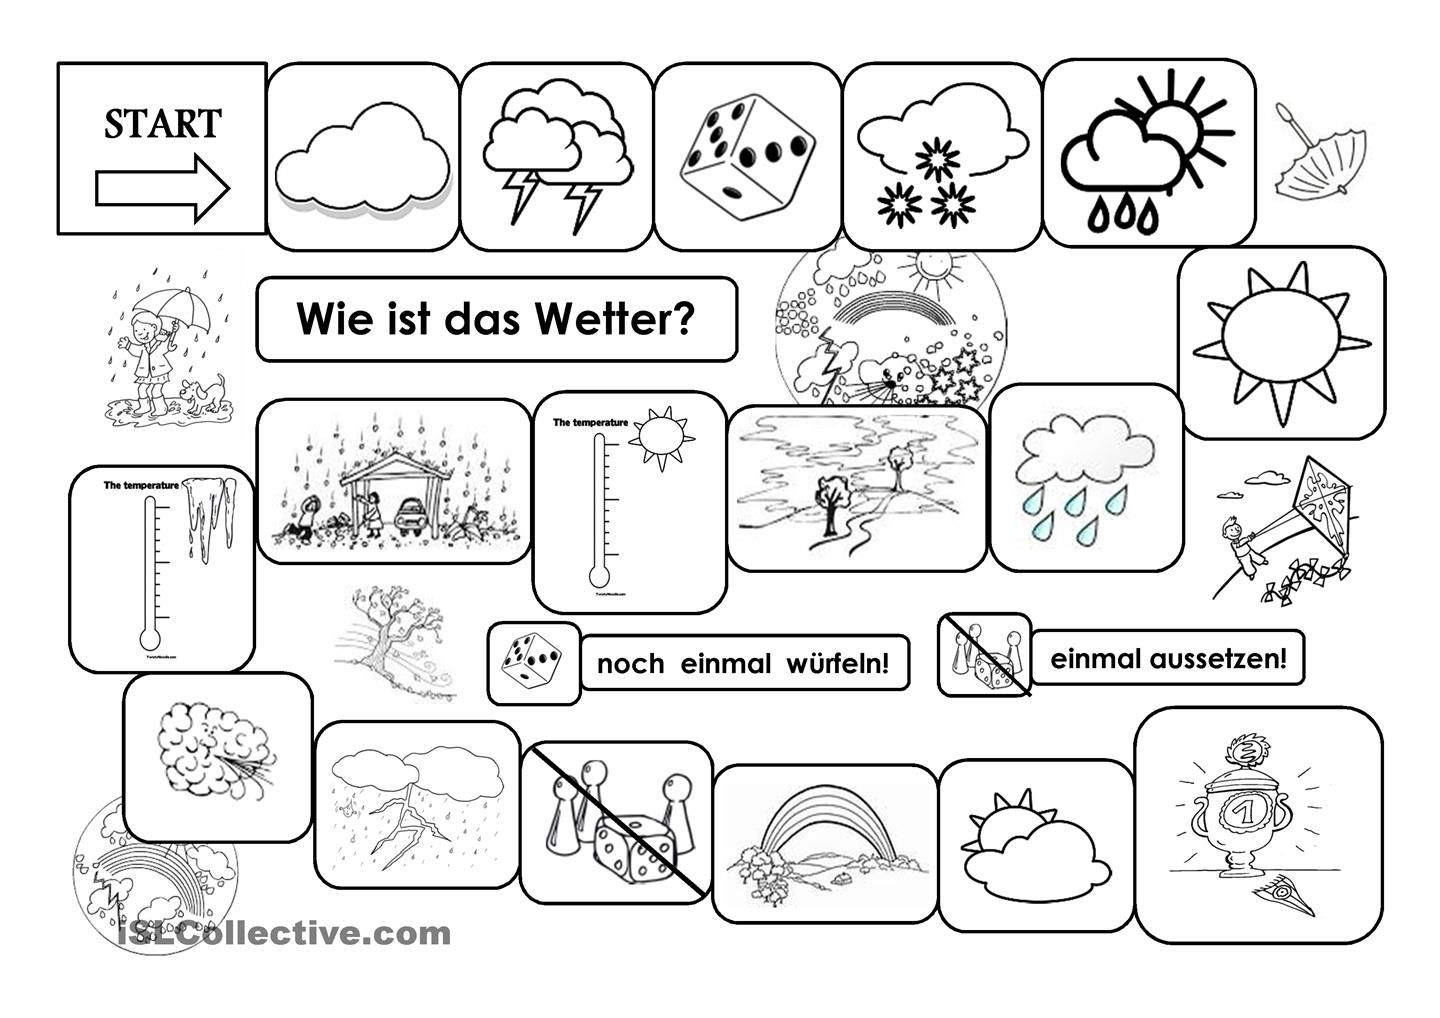 Das Wetter | Német | Pinterest | German, Deutsch and Kindergarten